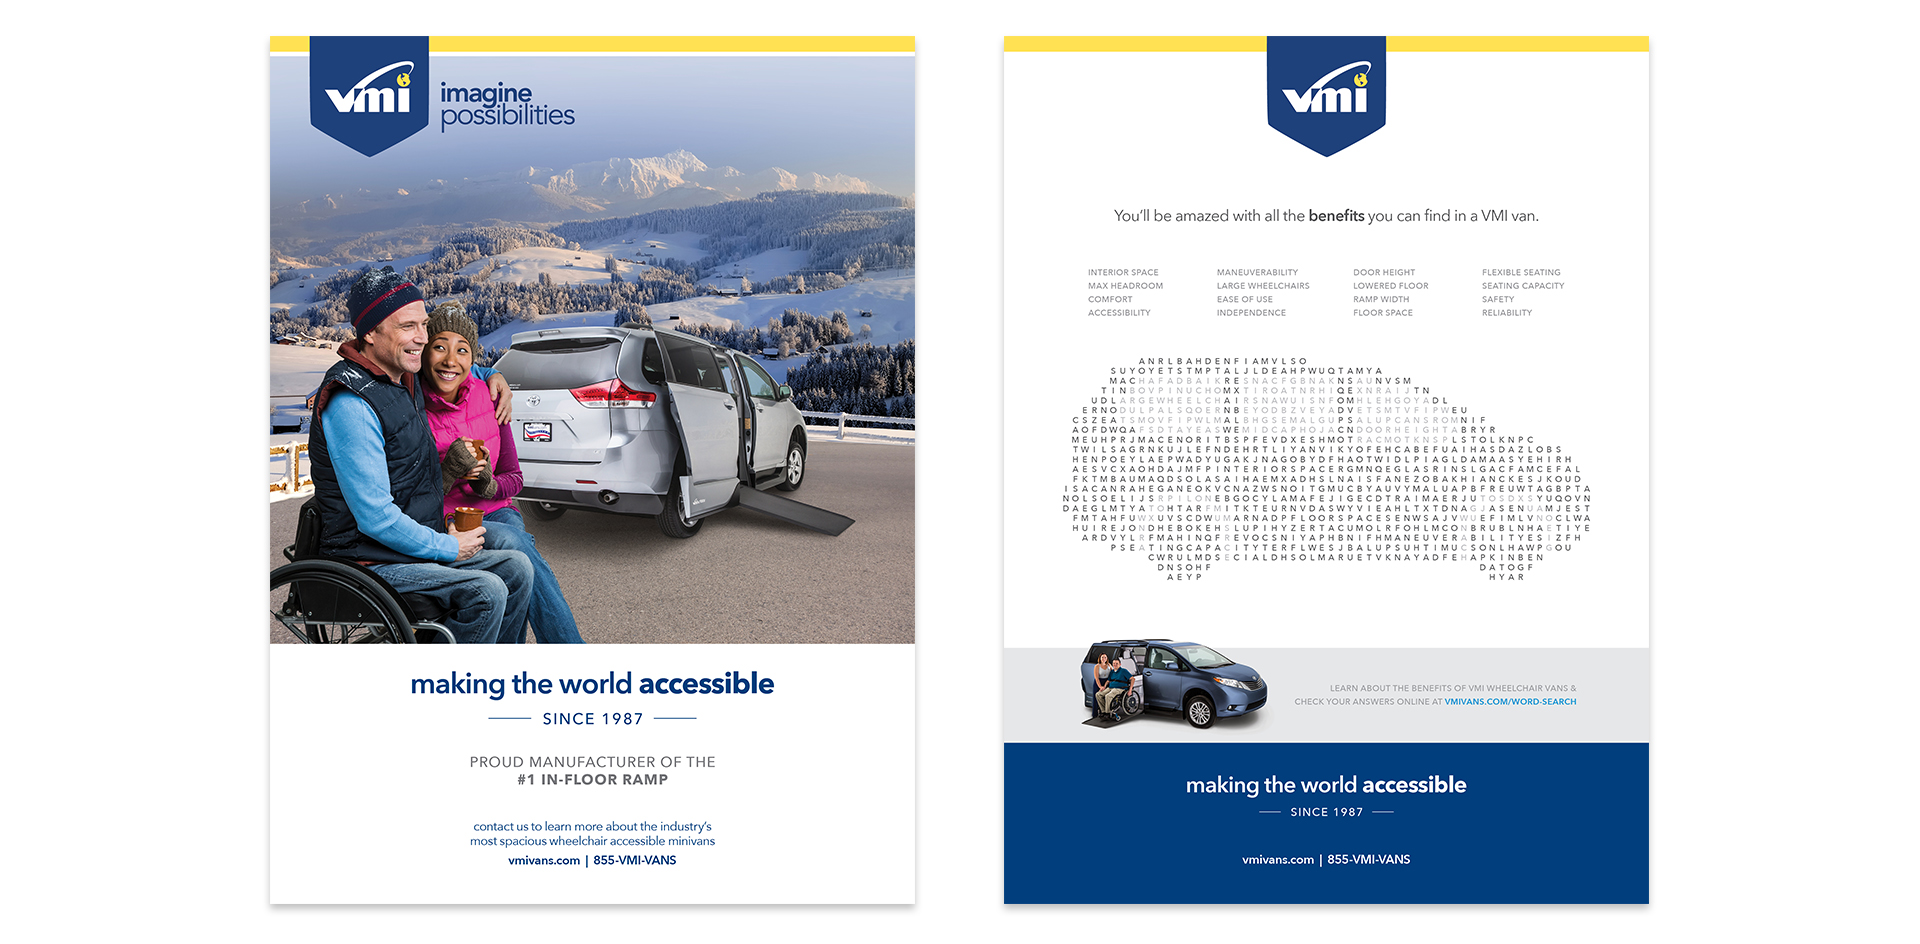 2 VMI full page advertisements